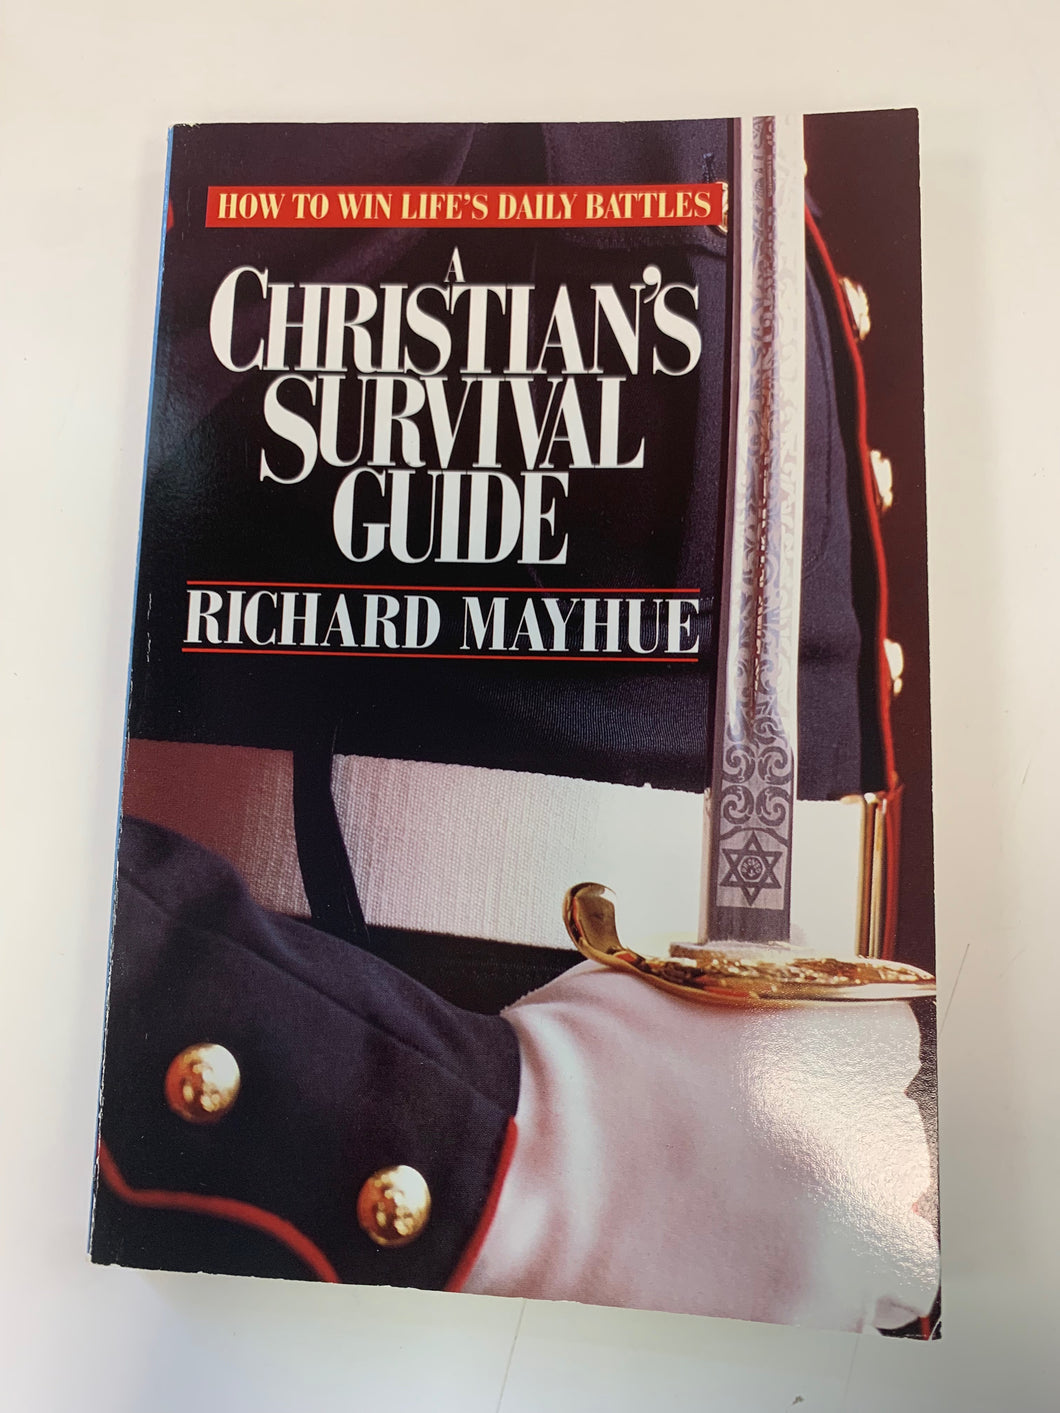 A Christian's Survival Guide by Richard Mayhue